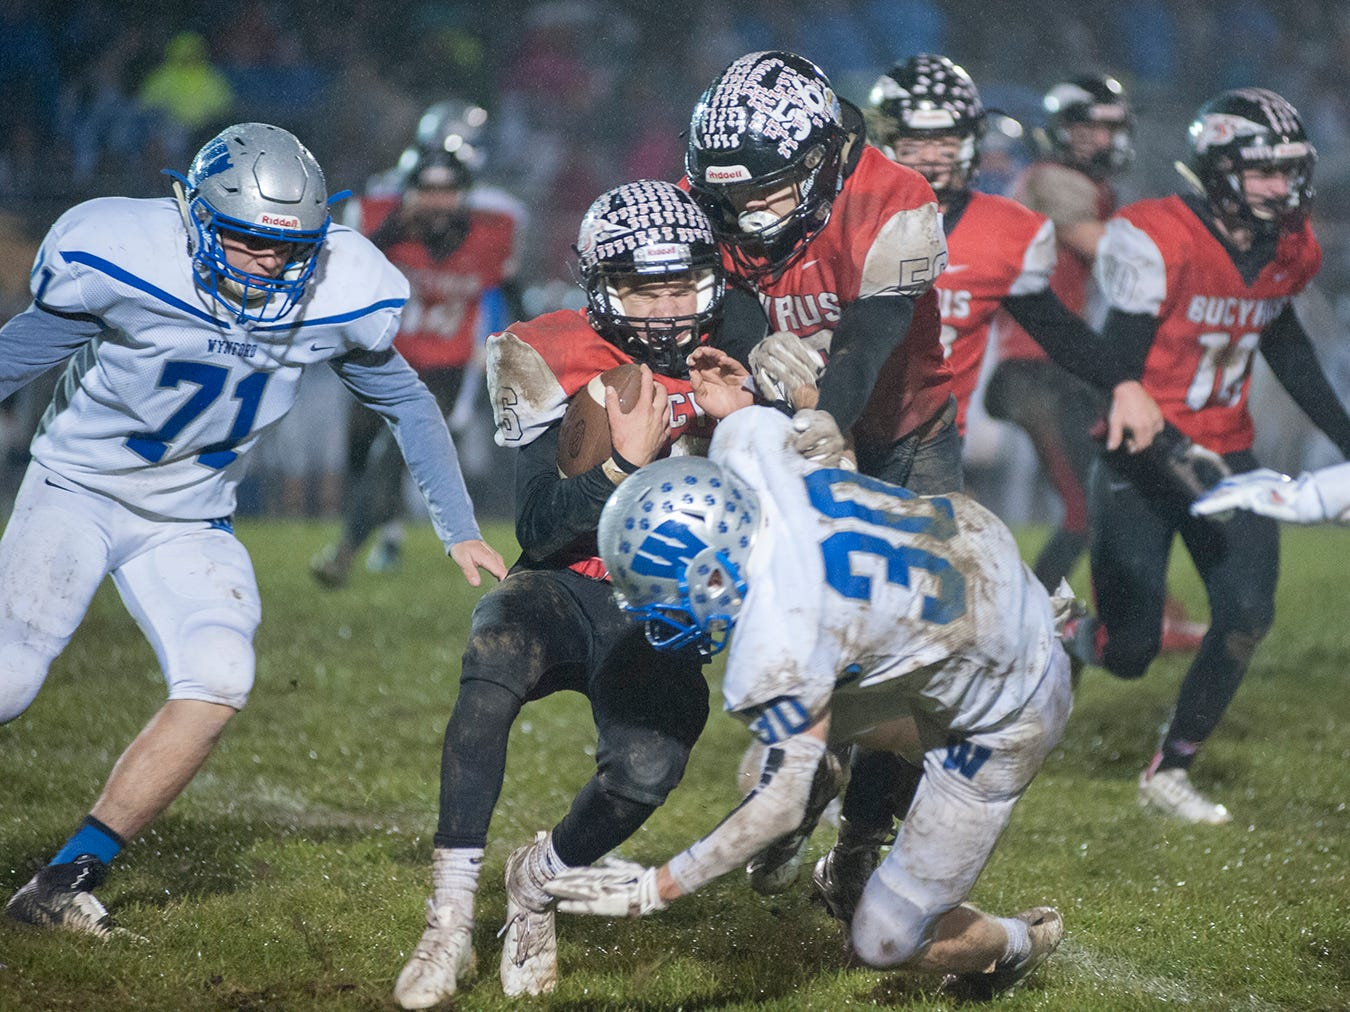 Wynford's Lucas Hackworth tackles Bucyrus' Lincoln Mollenkopf.